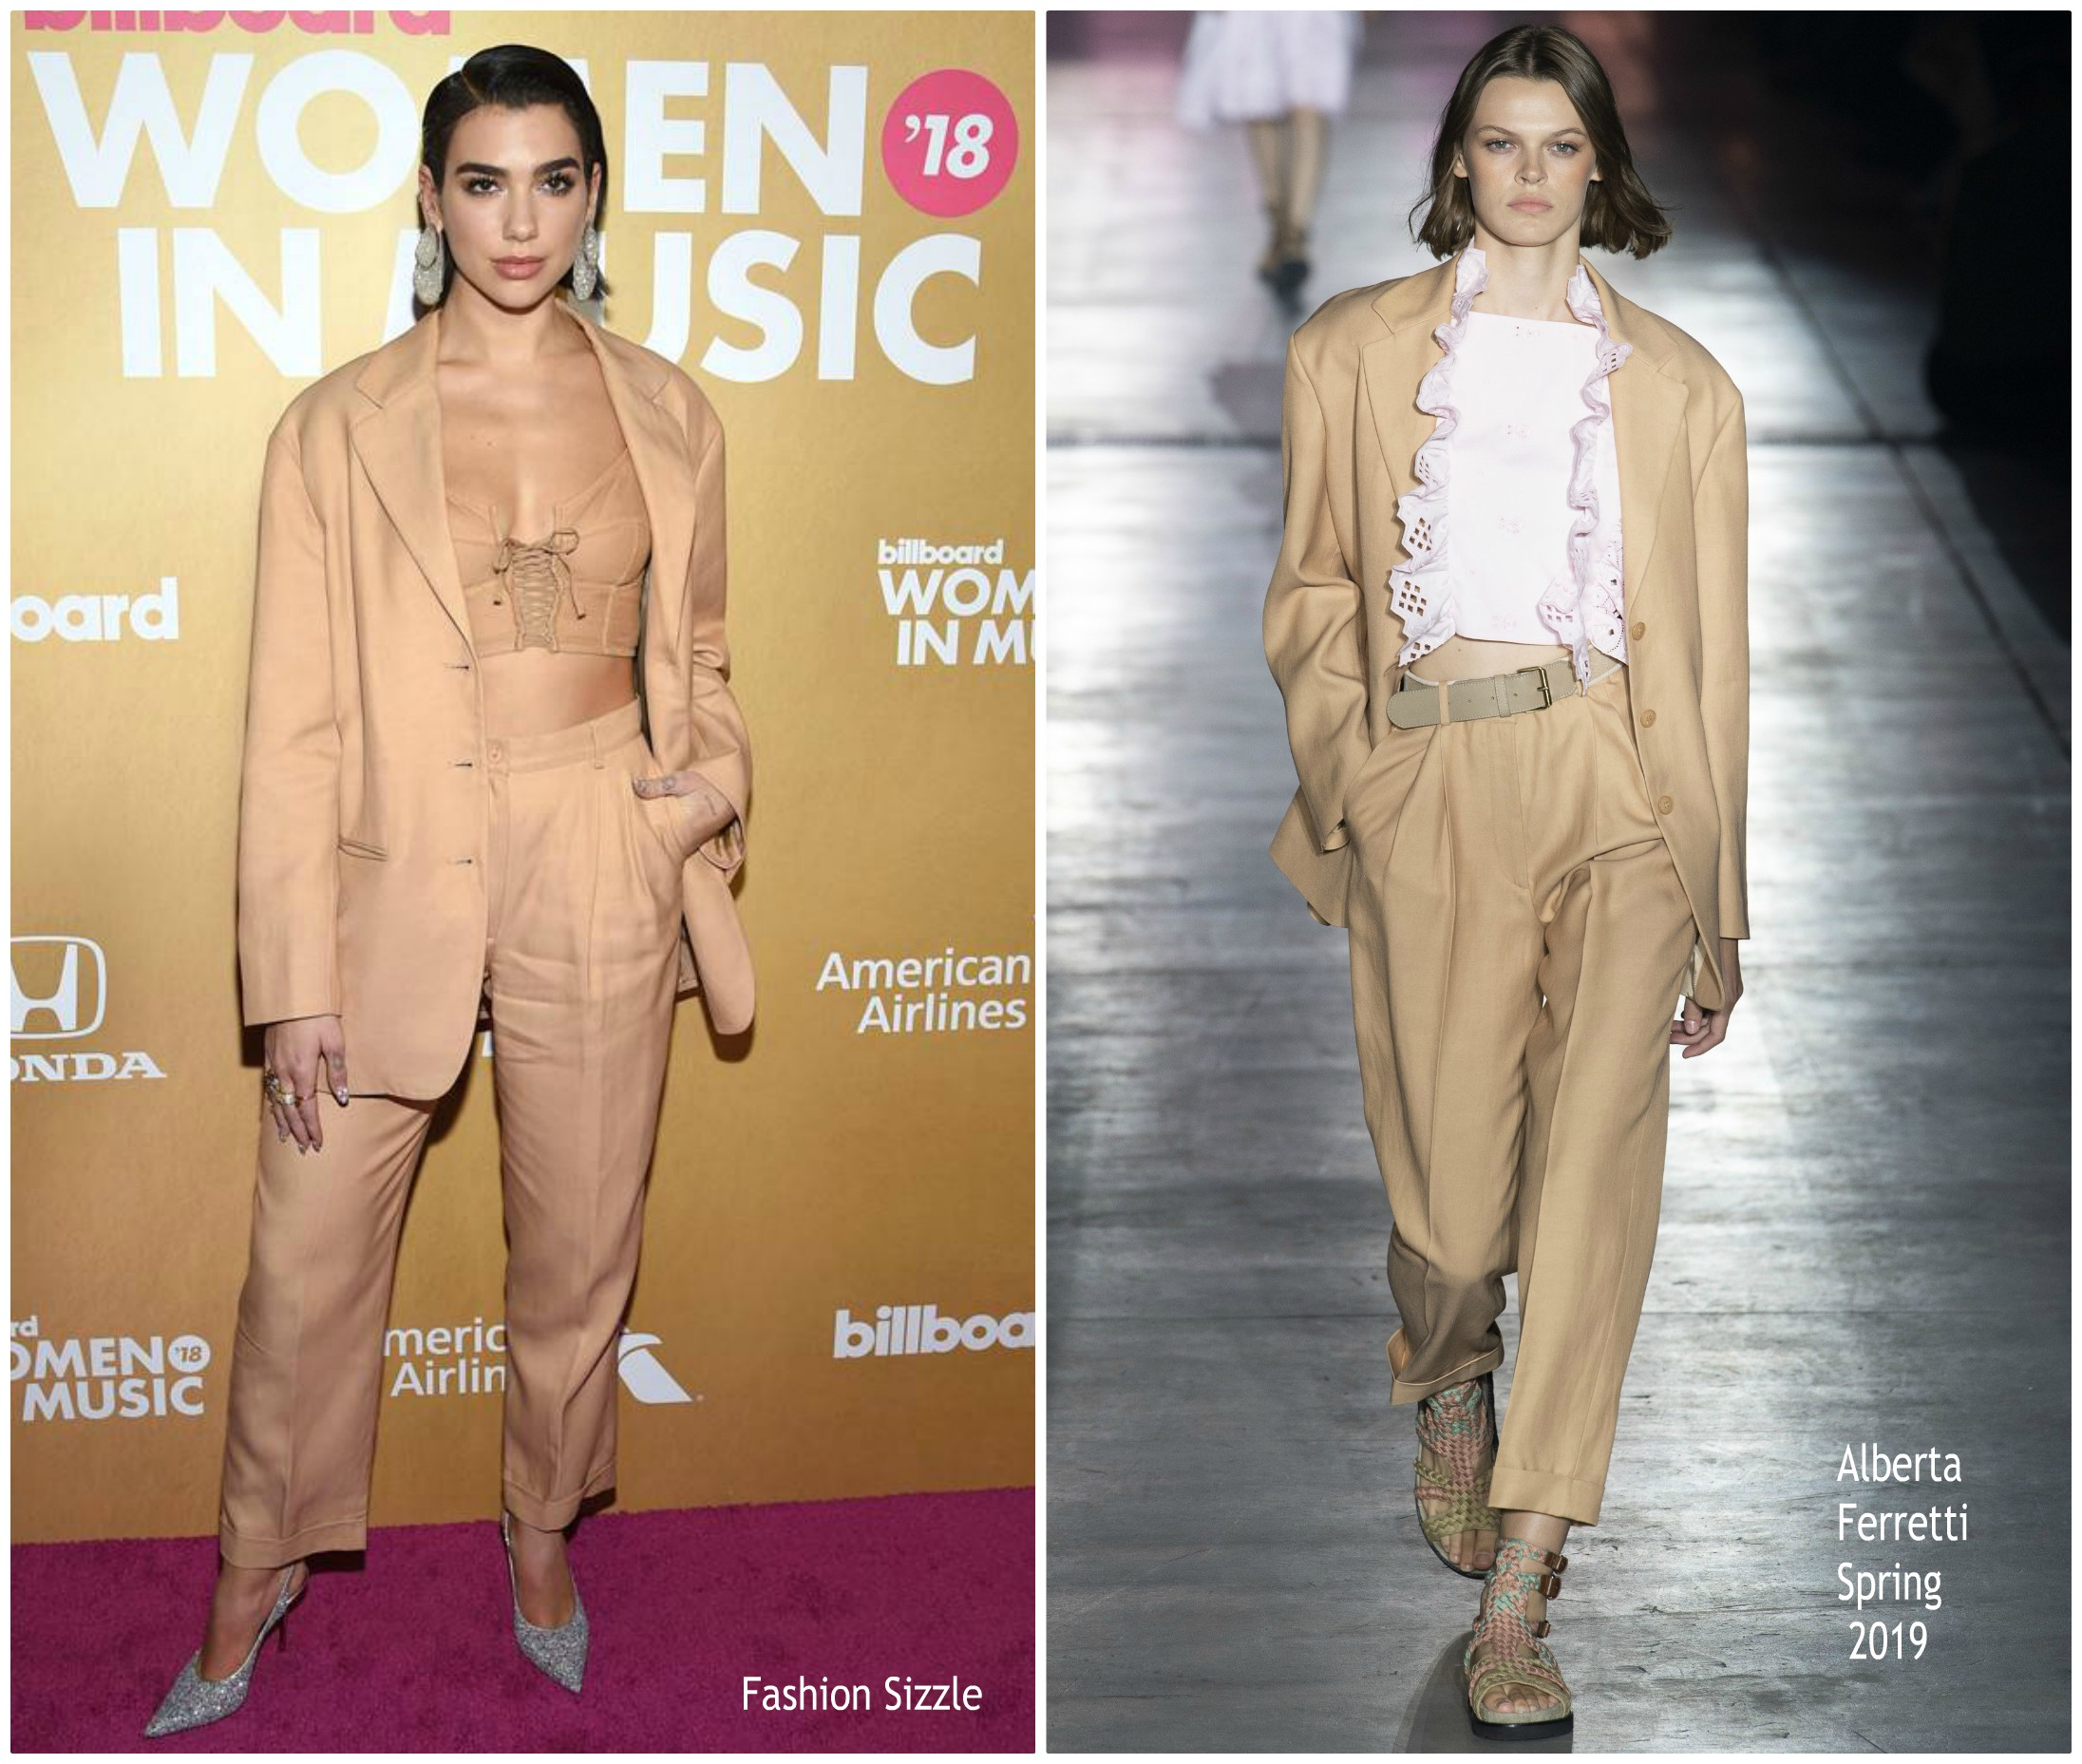 dua-lipa-in-albera-ferretti-billboard-women-in-music-2018